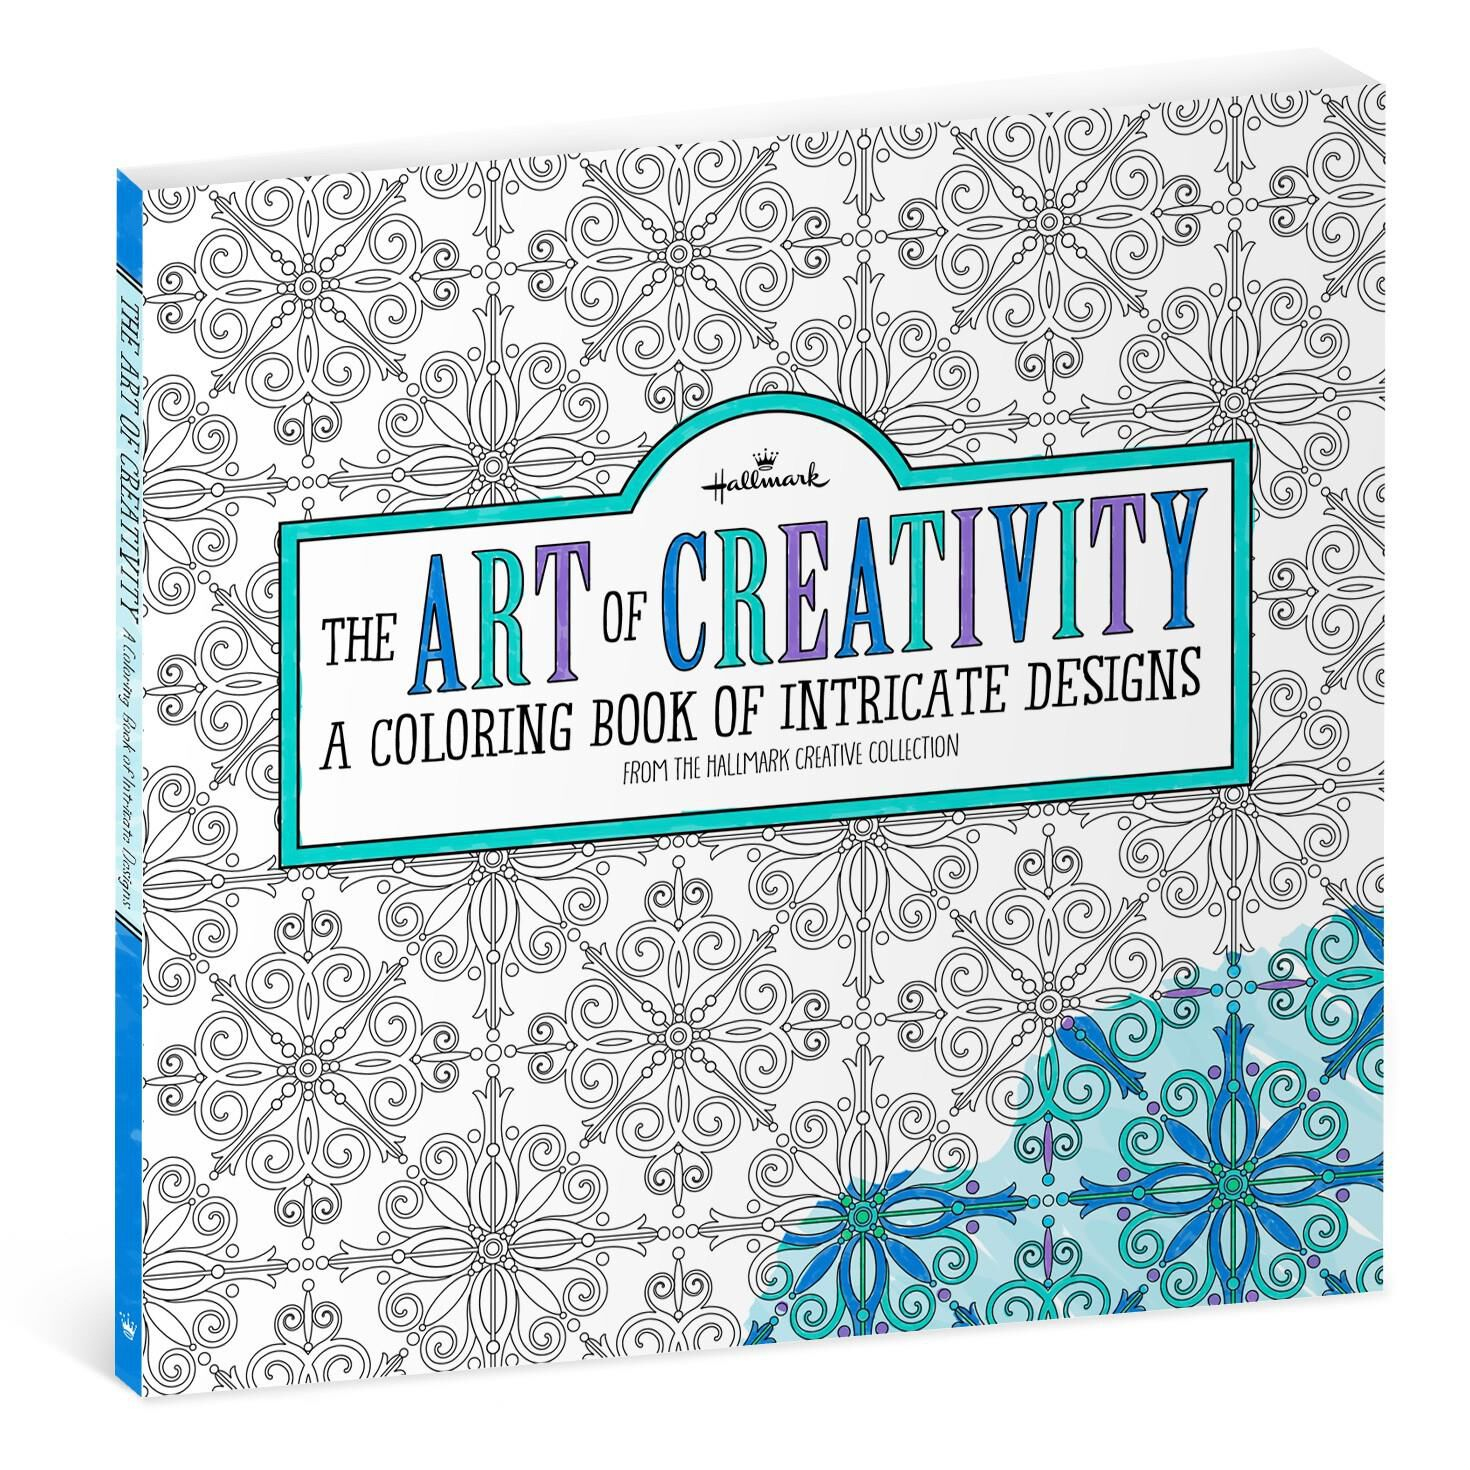 Whimsical designs coloring book - Whimsical Designs Coloring Book 16